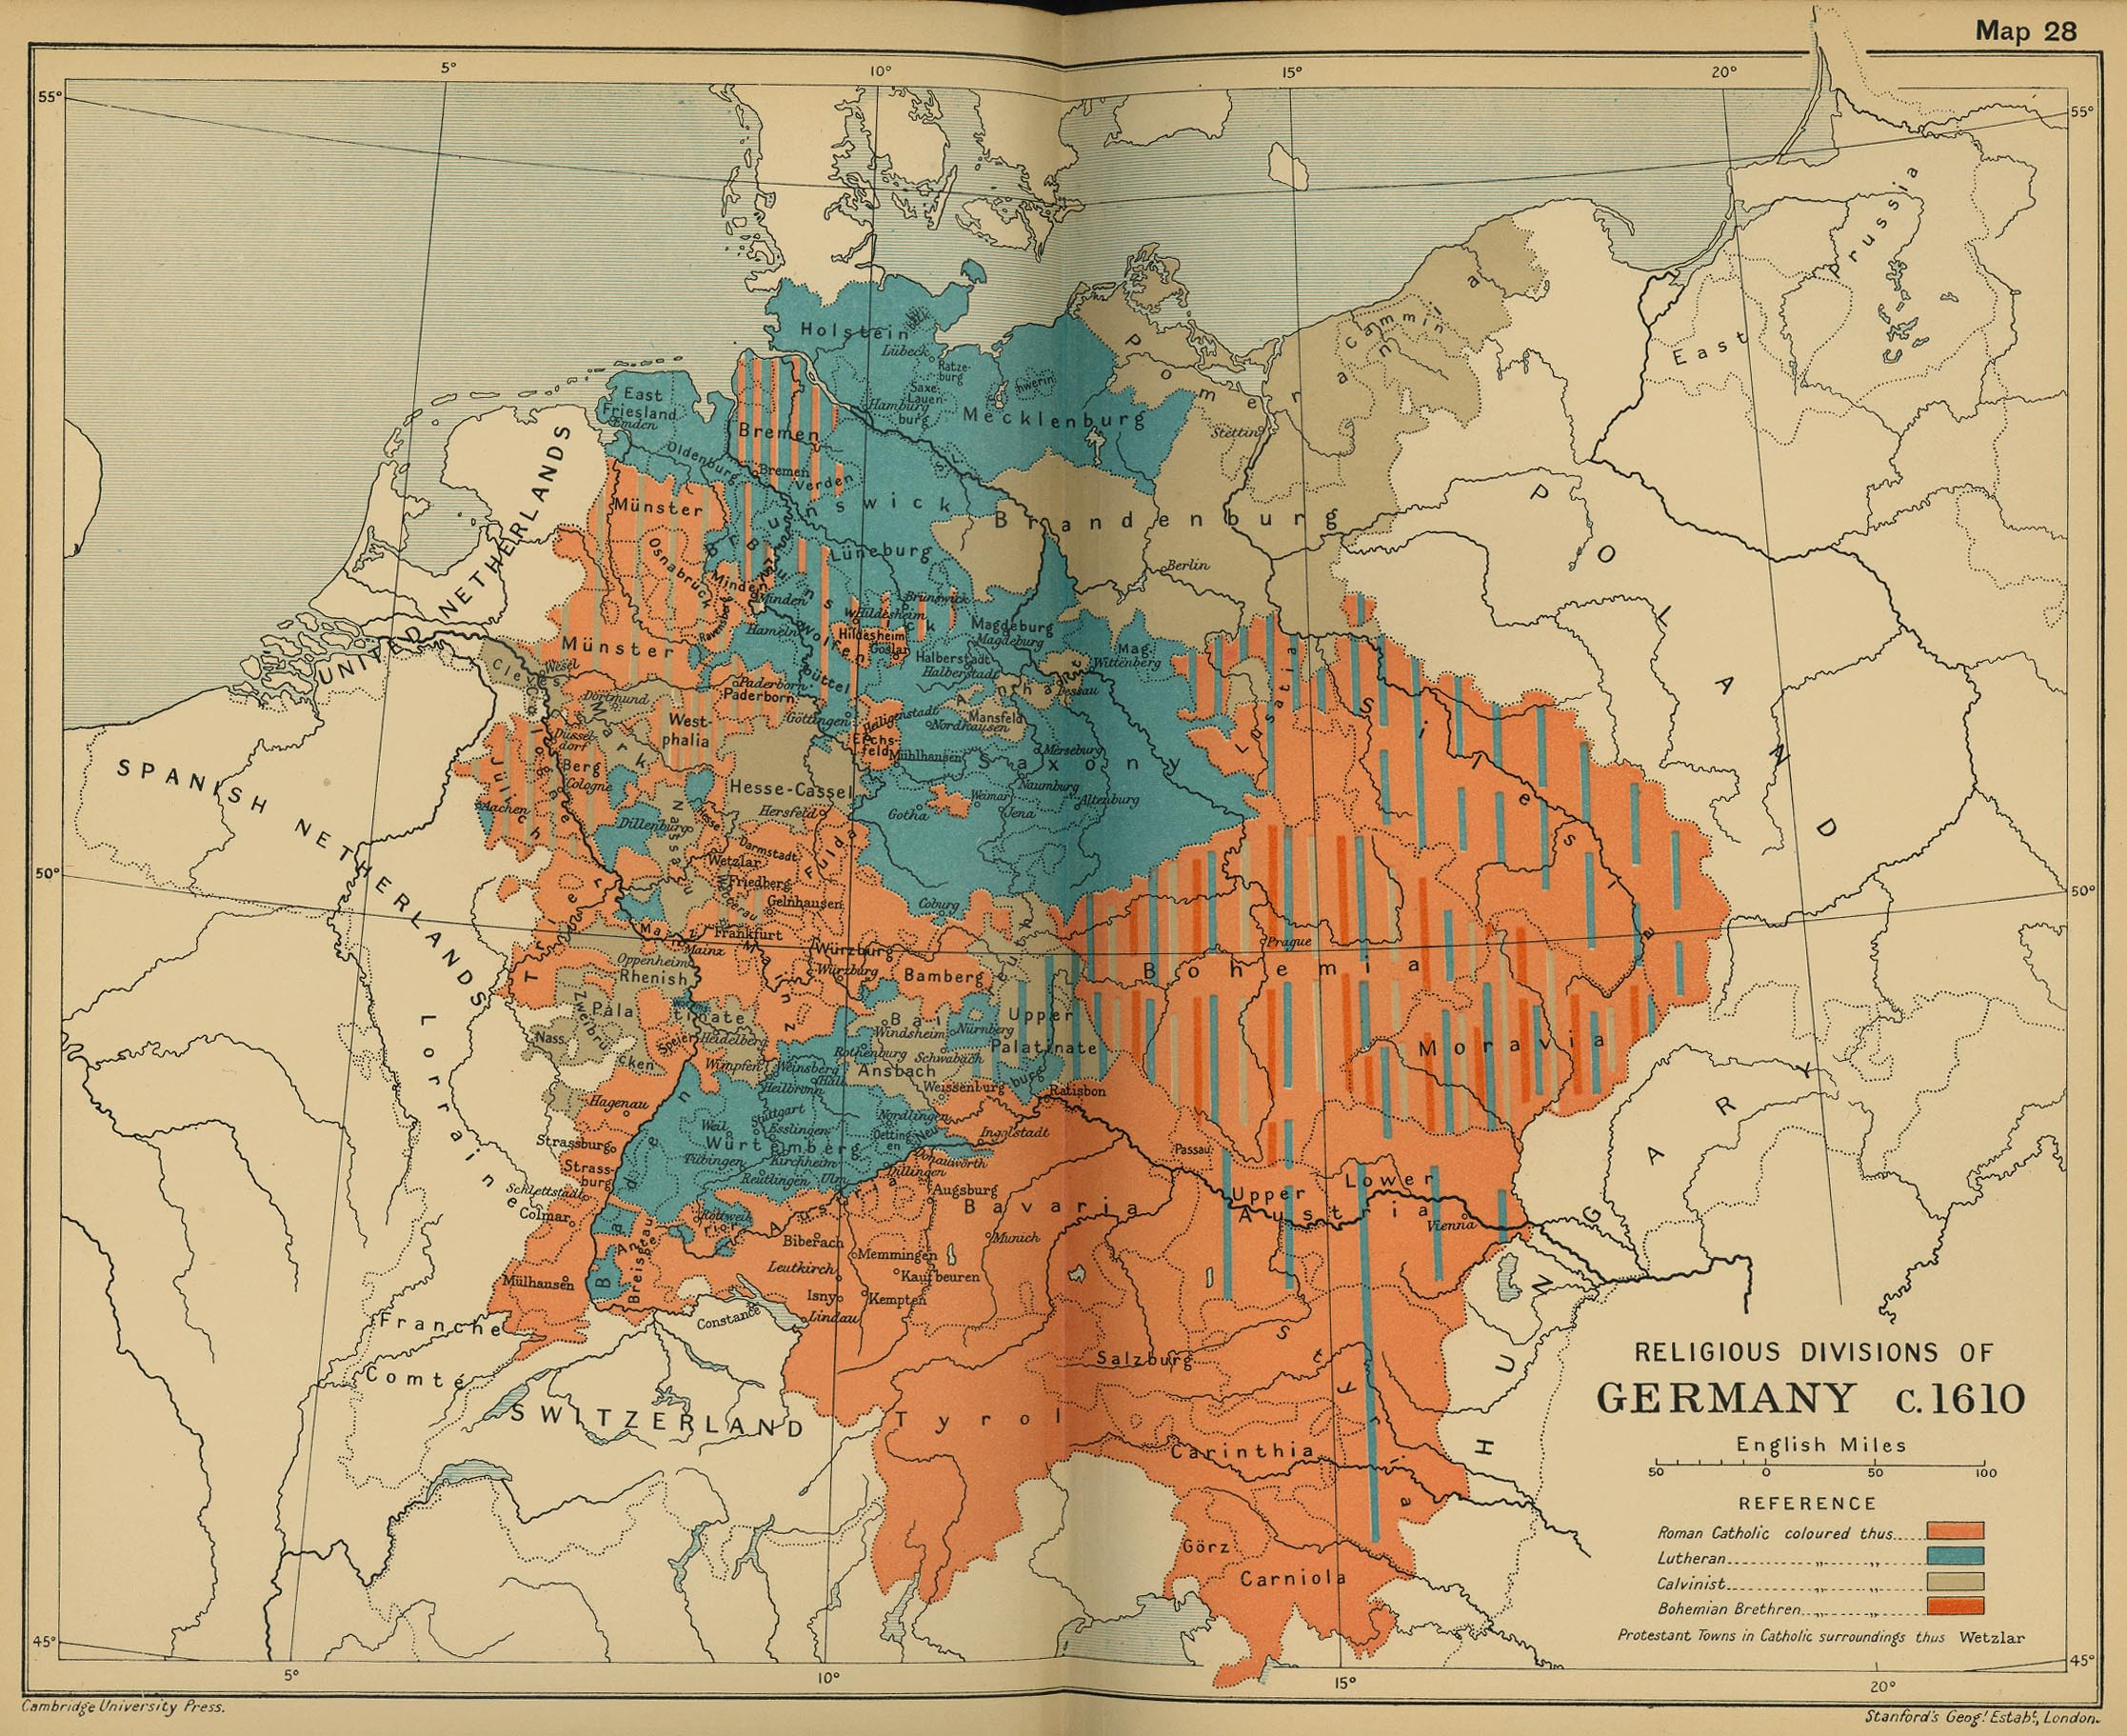 Historical Map Of Germany 1900.Cambridge Modern History Atlas 1912 Perry Castaneda Map